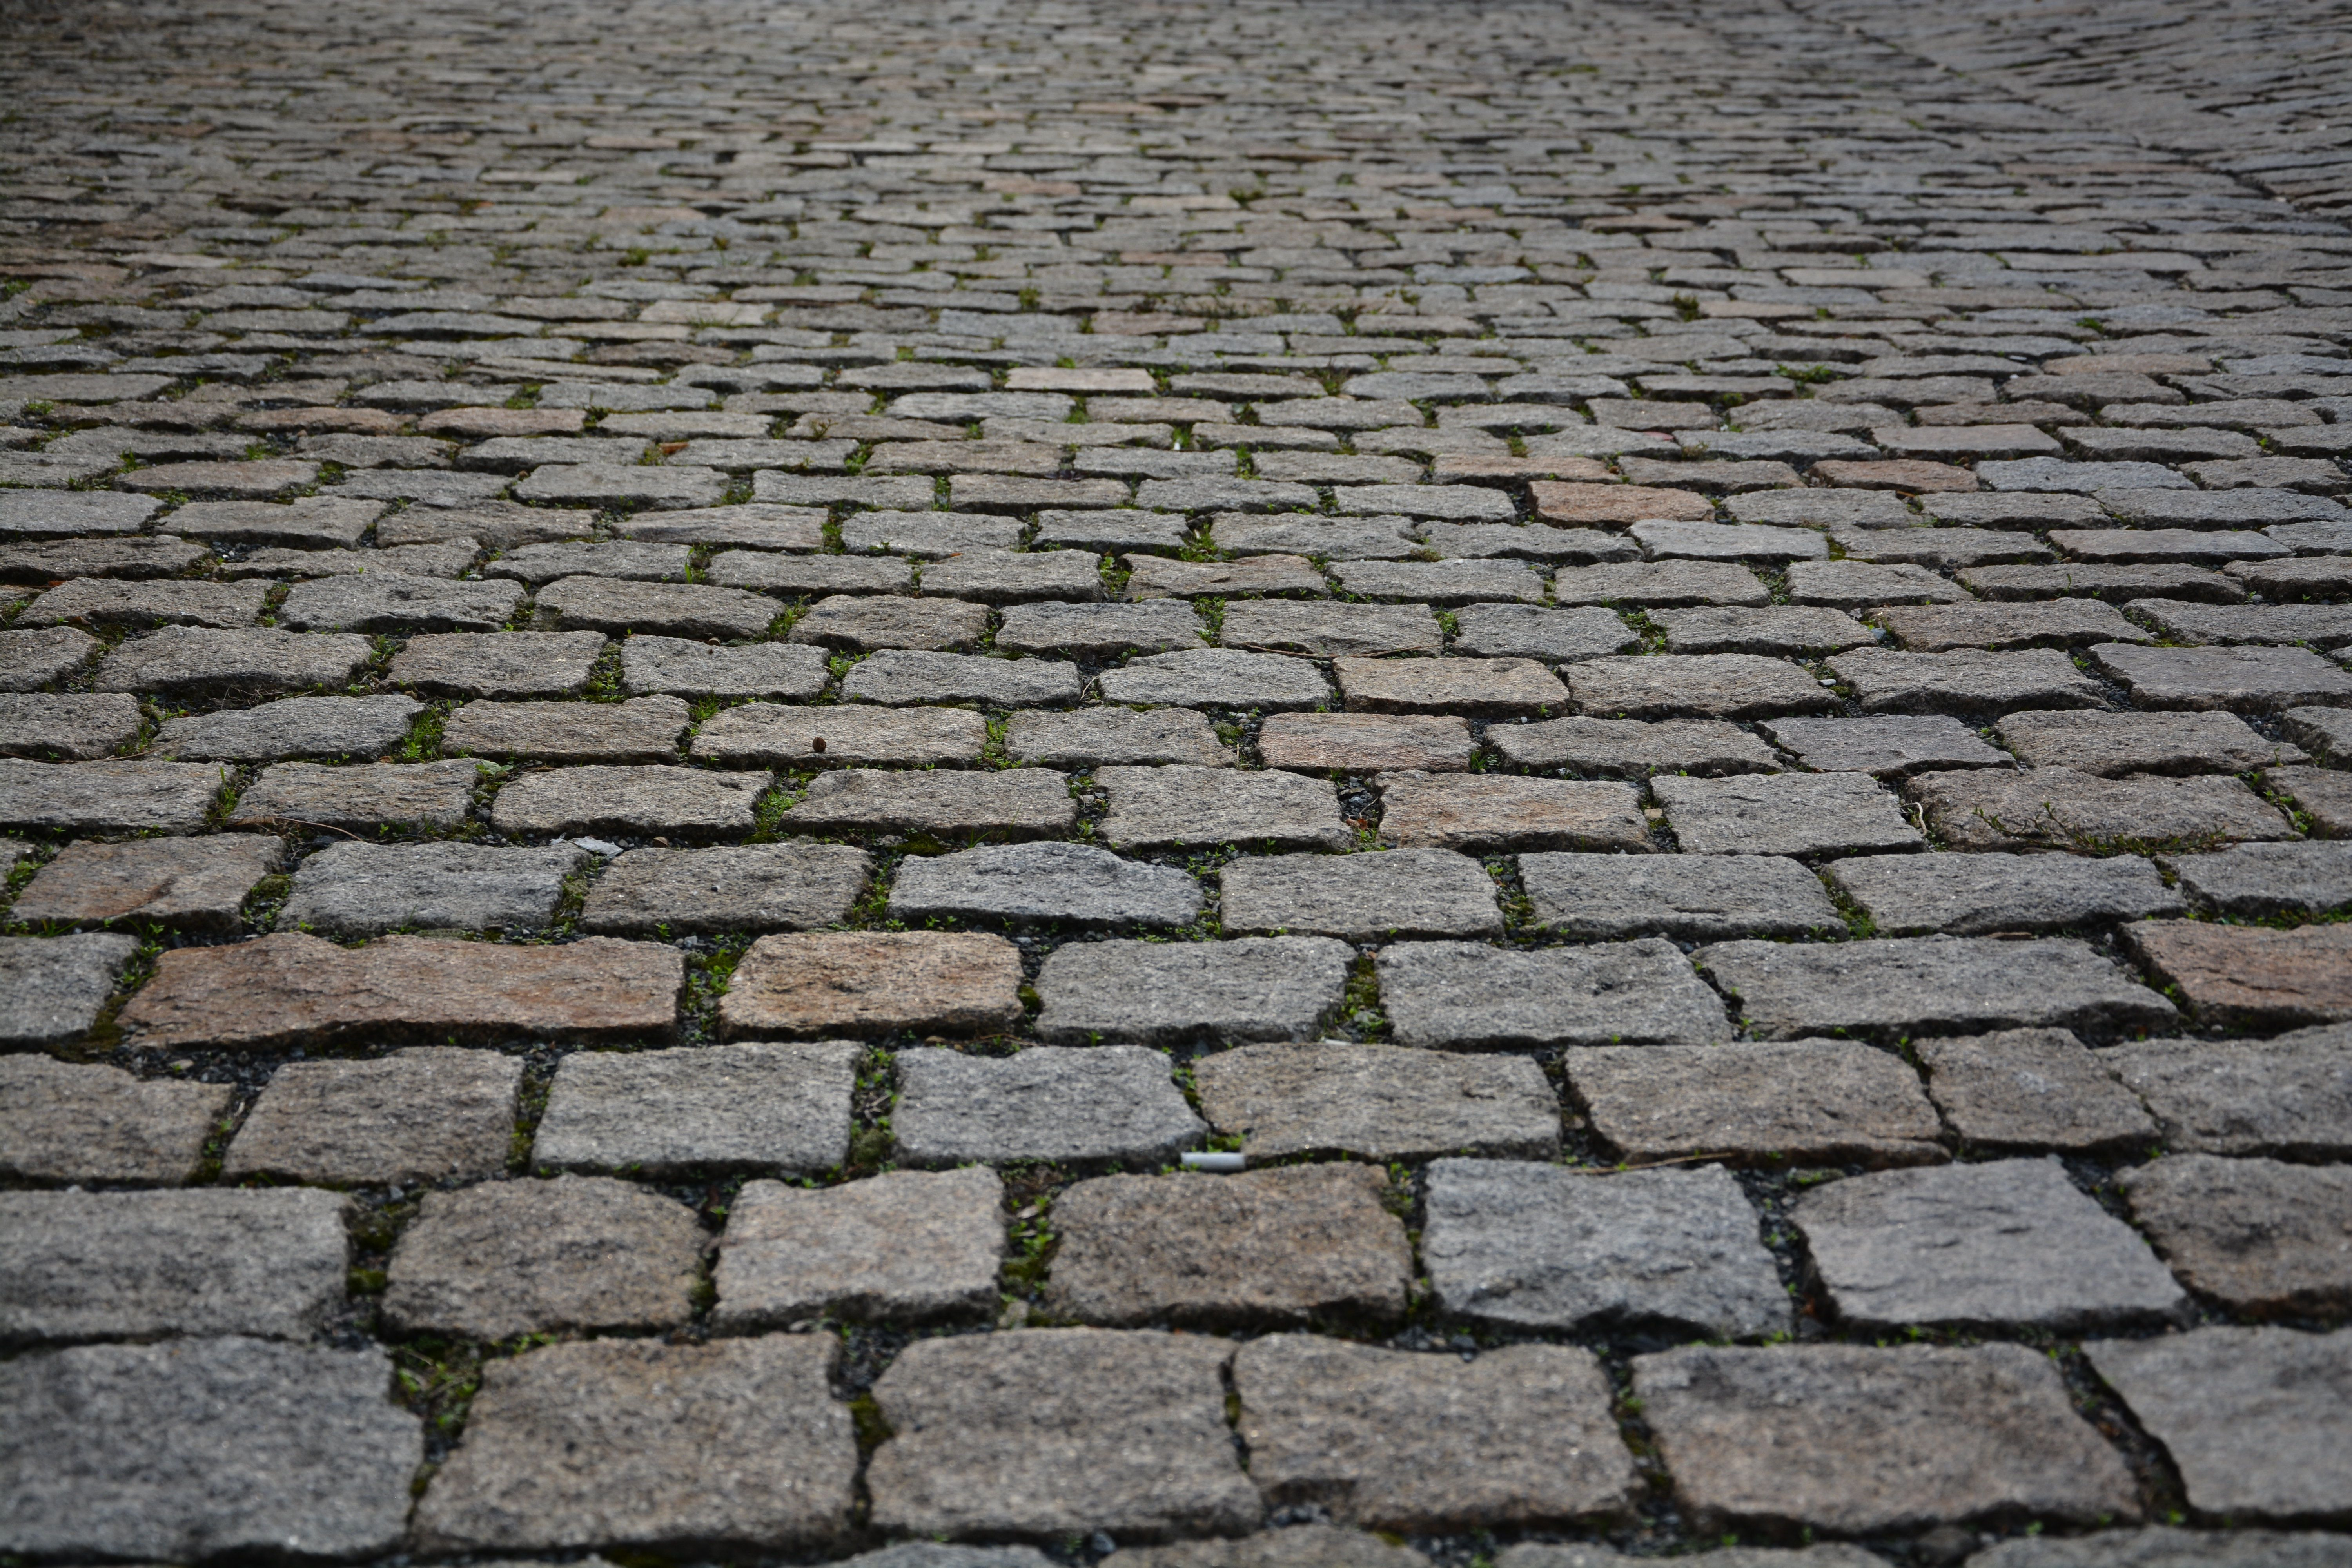 Road with cobble stones